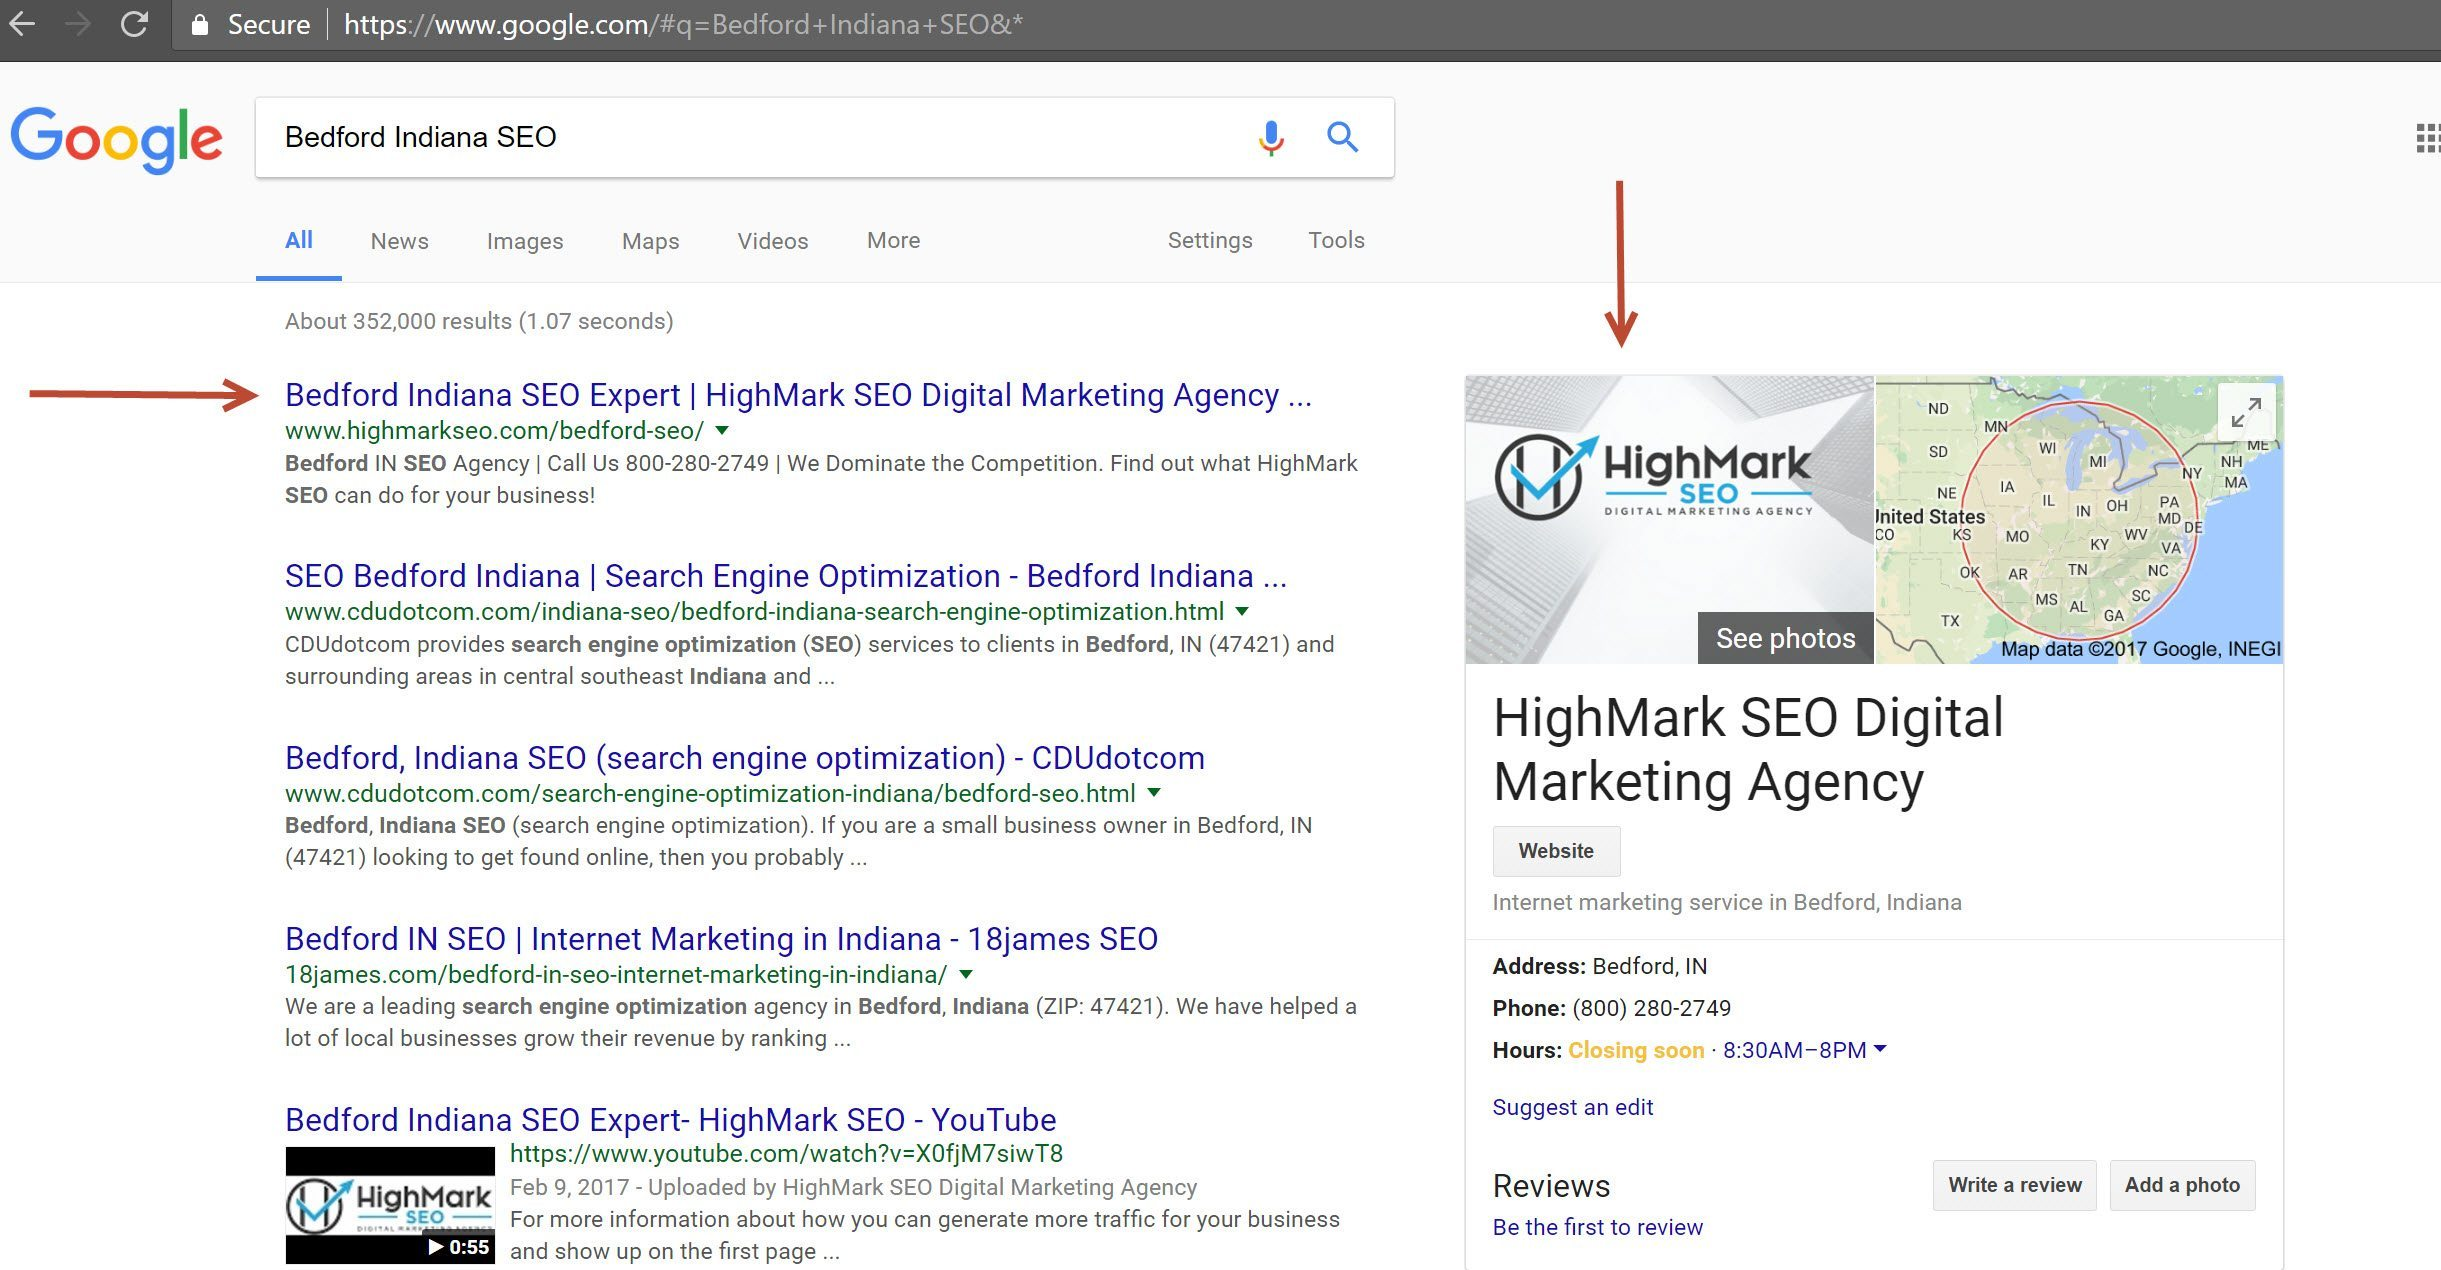 ... SEO Google Search 3.30.17 - HighMark SEO Digital Marketing Agency